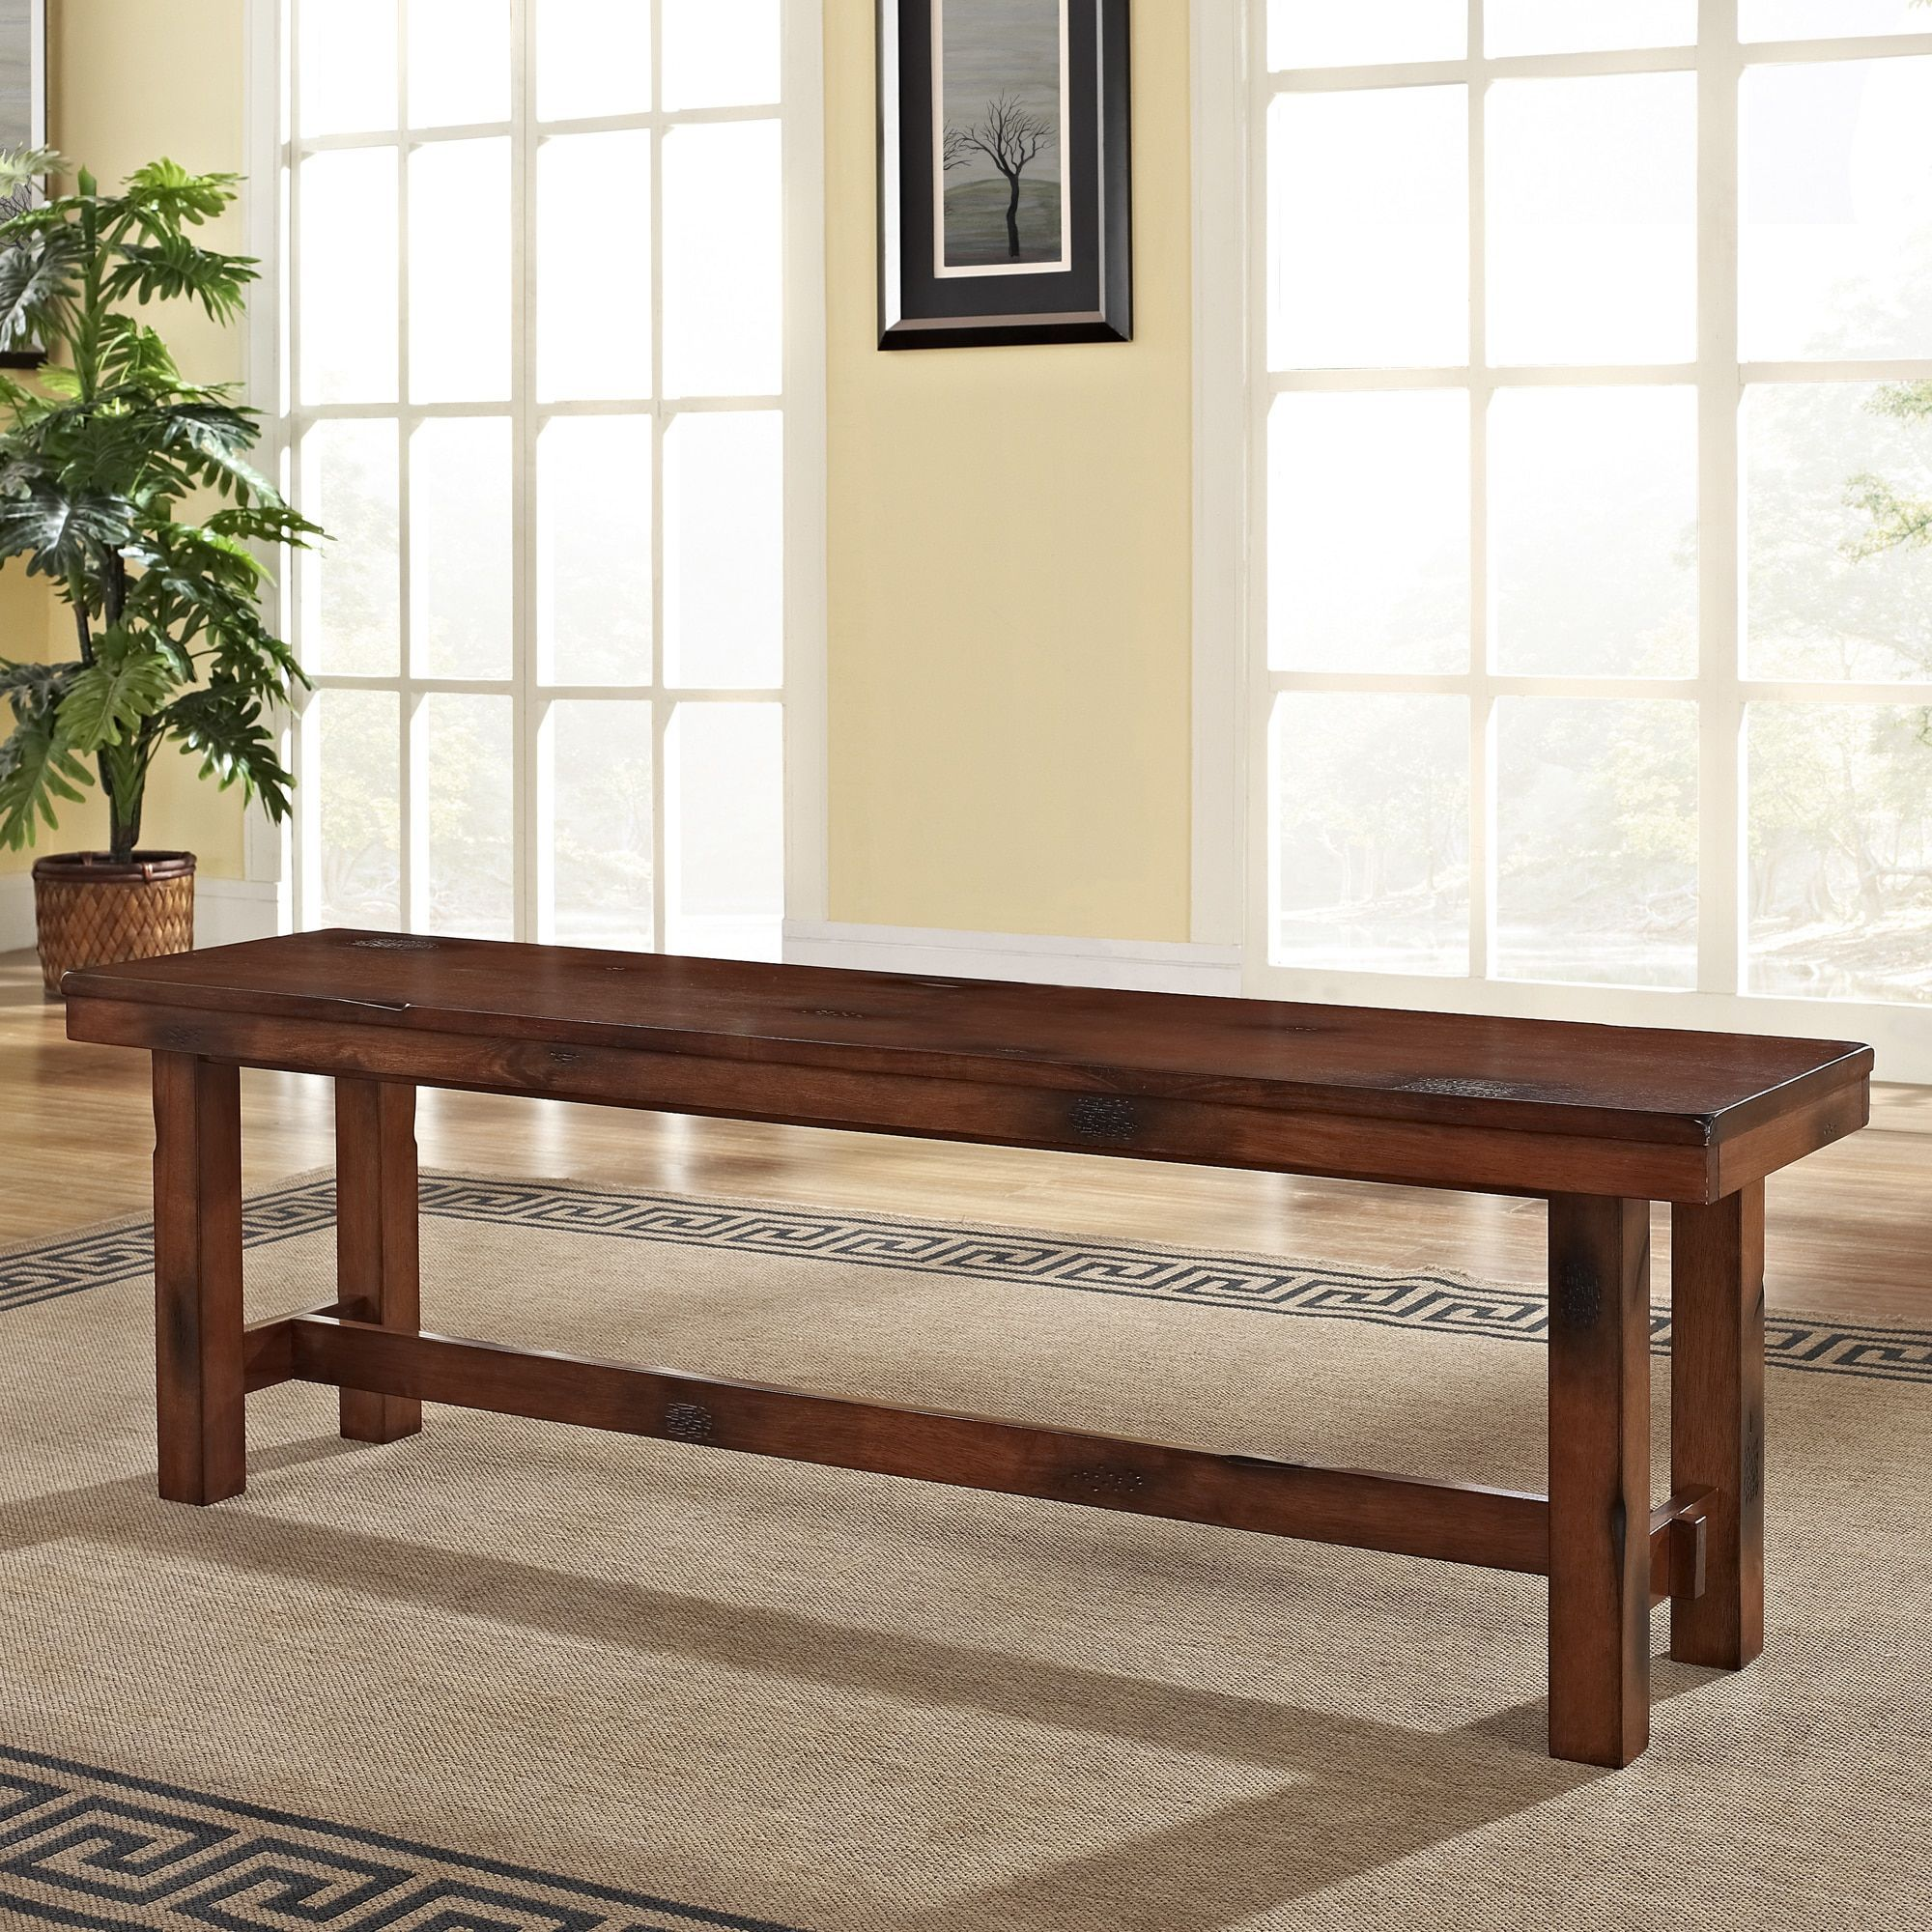 Rustic Dark Oak 60 Inch Trestle Base Dining Bench 60 X 14 X 18h